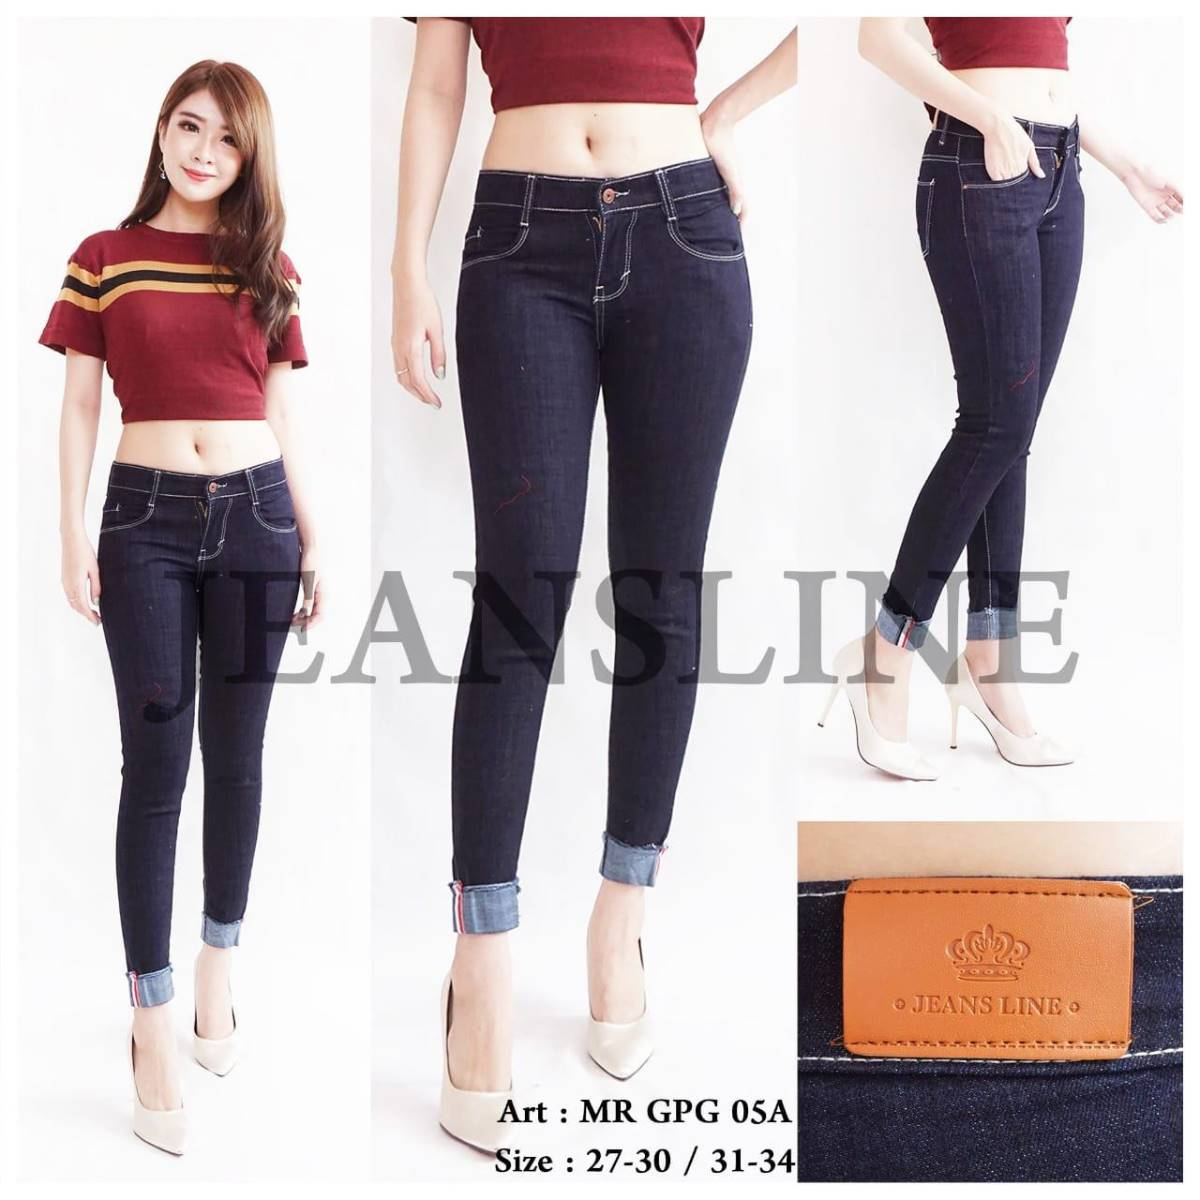 Celana Panjang Jeans Ladies (mr Gpg 05a) Size 27, 28, 29, 303